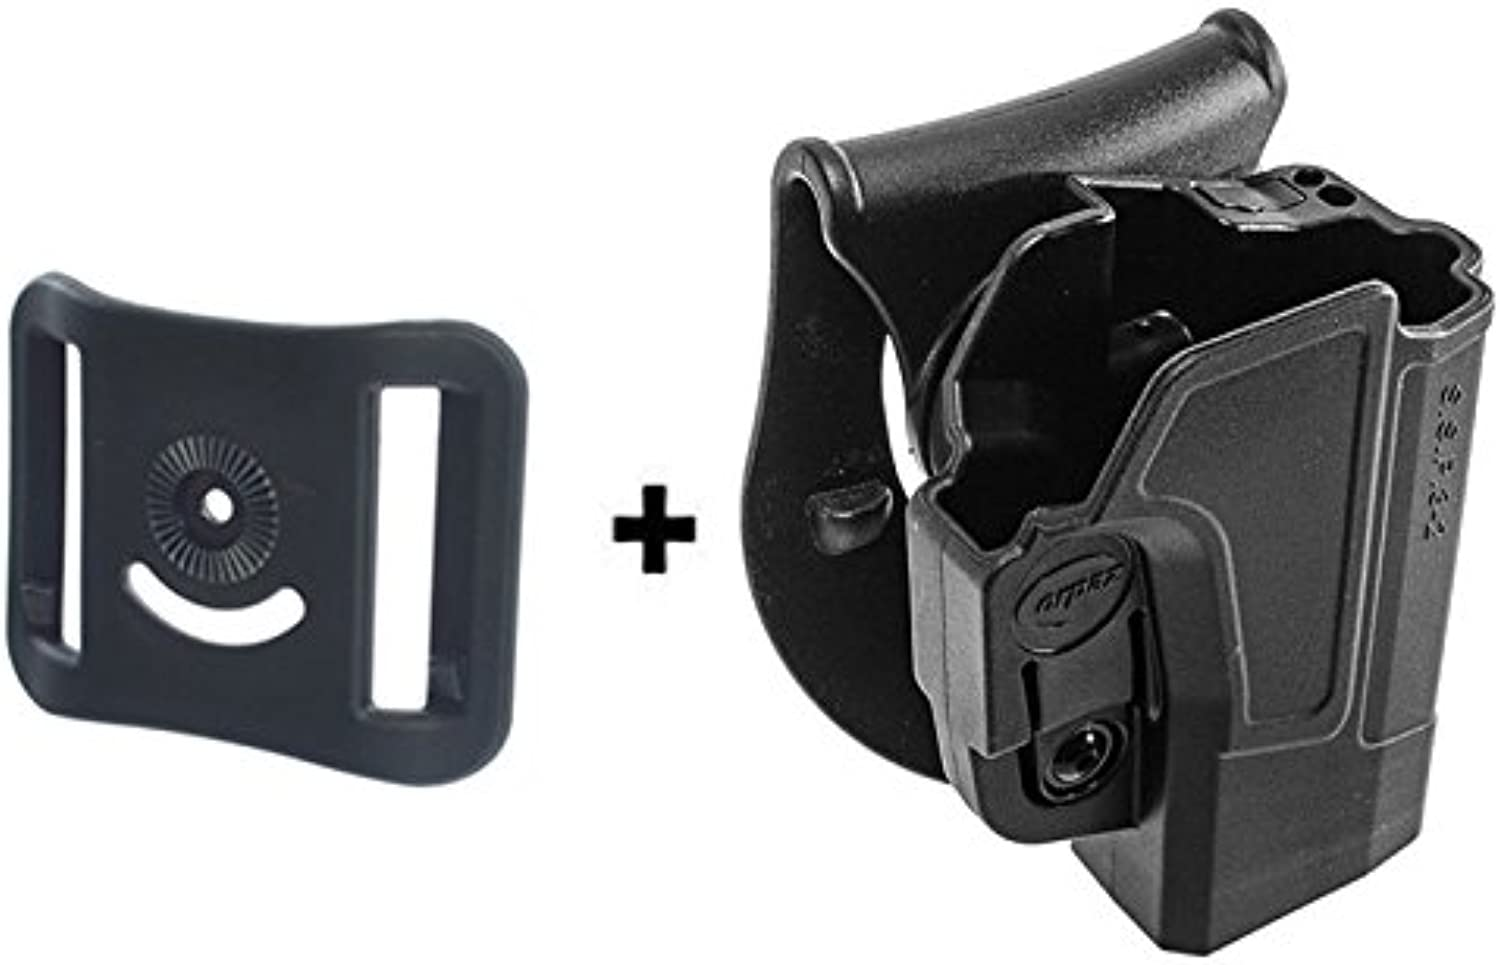 Orpaz Active Retention ajustment redO redation Tactical Paddle Holster + Belt Loop Attachment for Sig Sauer p320 P250 Full Size and Compact